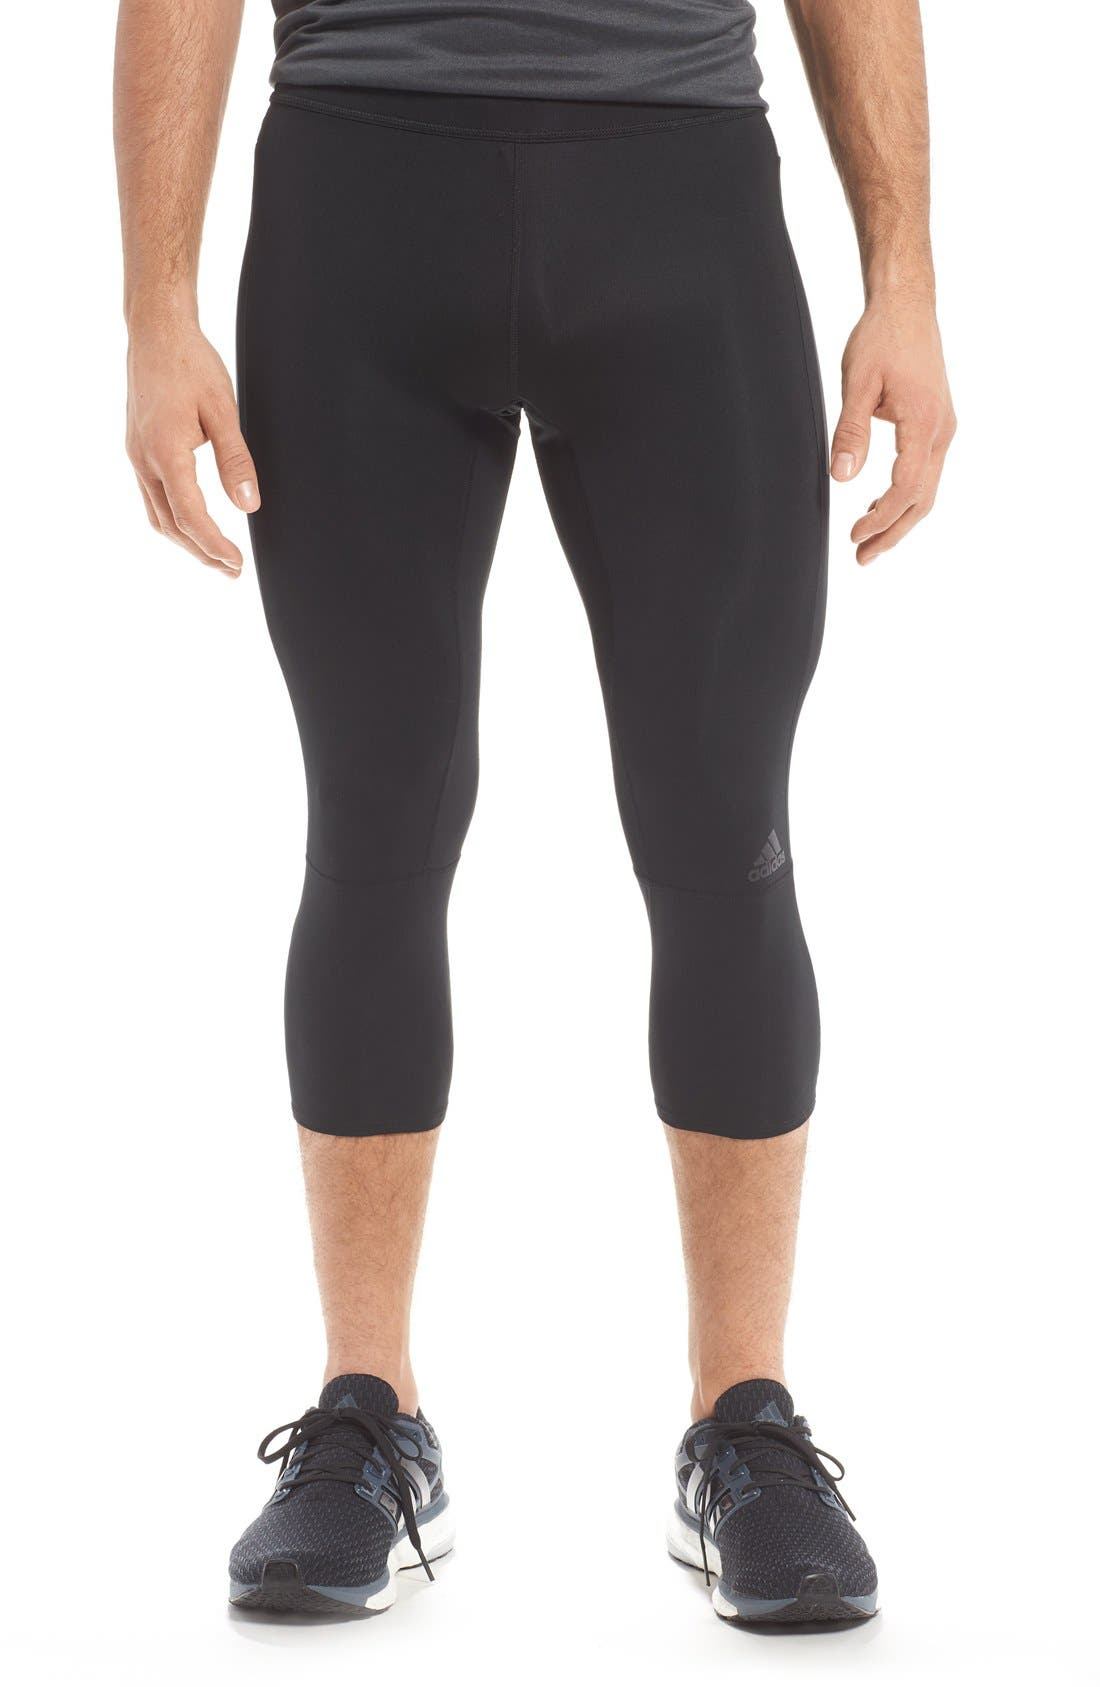 ADIDAS Supernova Three-Quarter Performance Tights